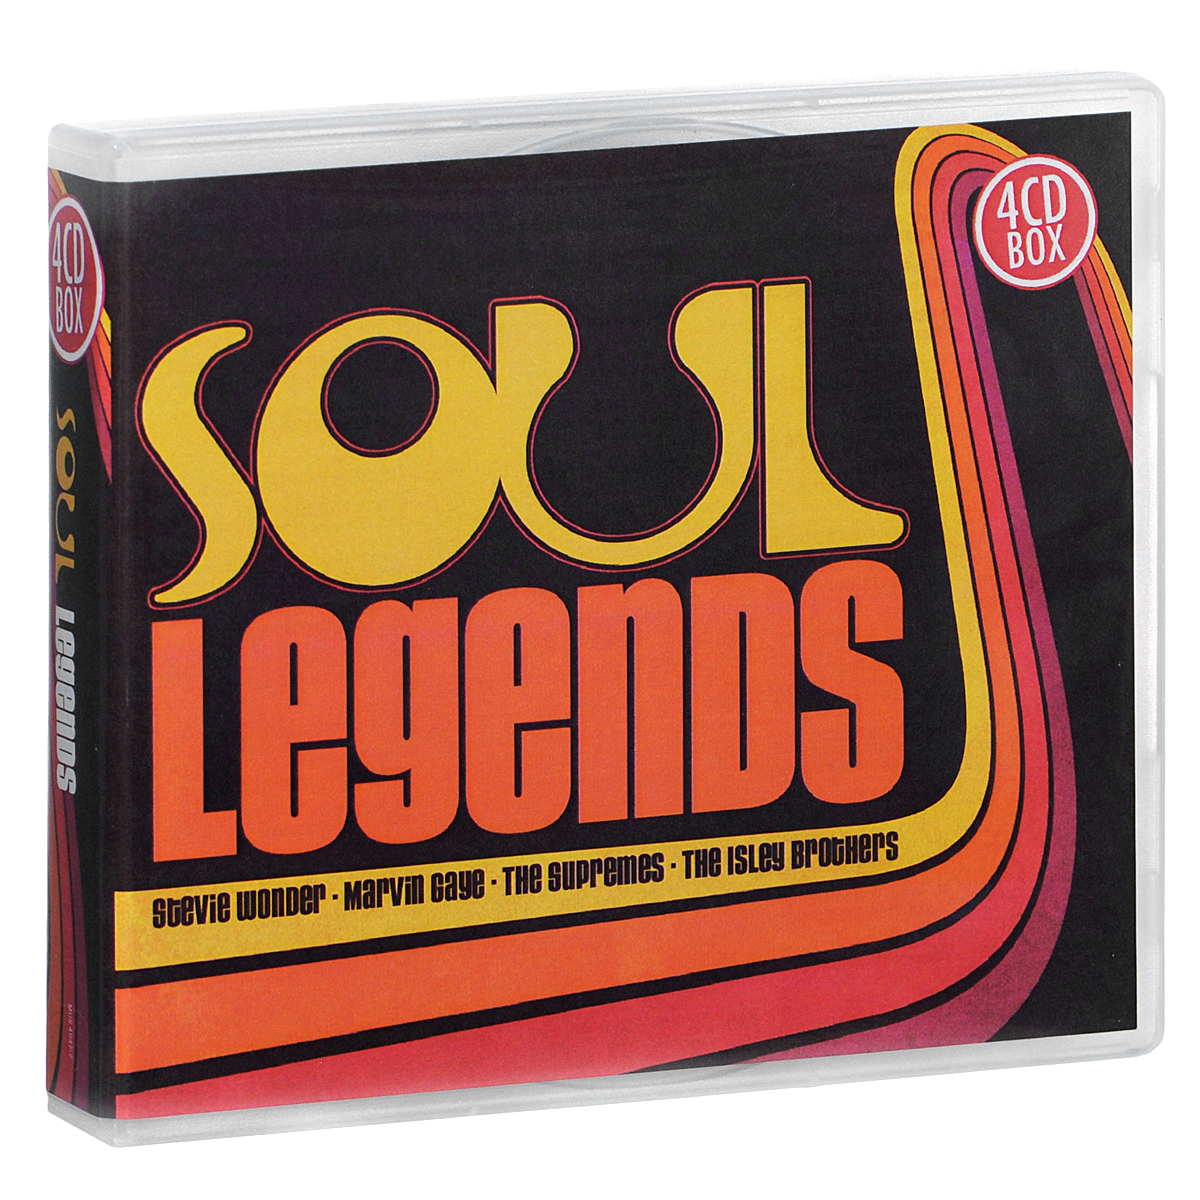 Фото - Стиви Уандер,Марвин Гэй,The Supremes,The Isley Brothers Soul Legends (4 CD) смоки робинсон the miracles soul legends smokey robinson